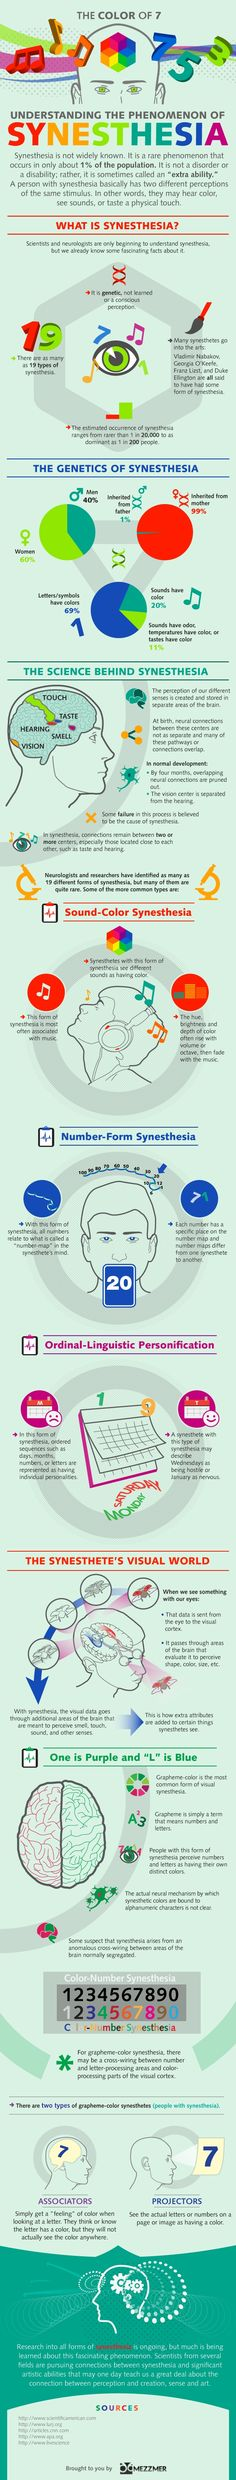 Synesthesia, a complex concept that gets clearer when expressed in an infographic